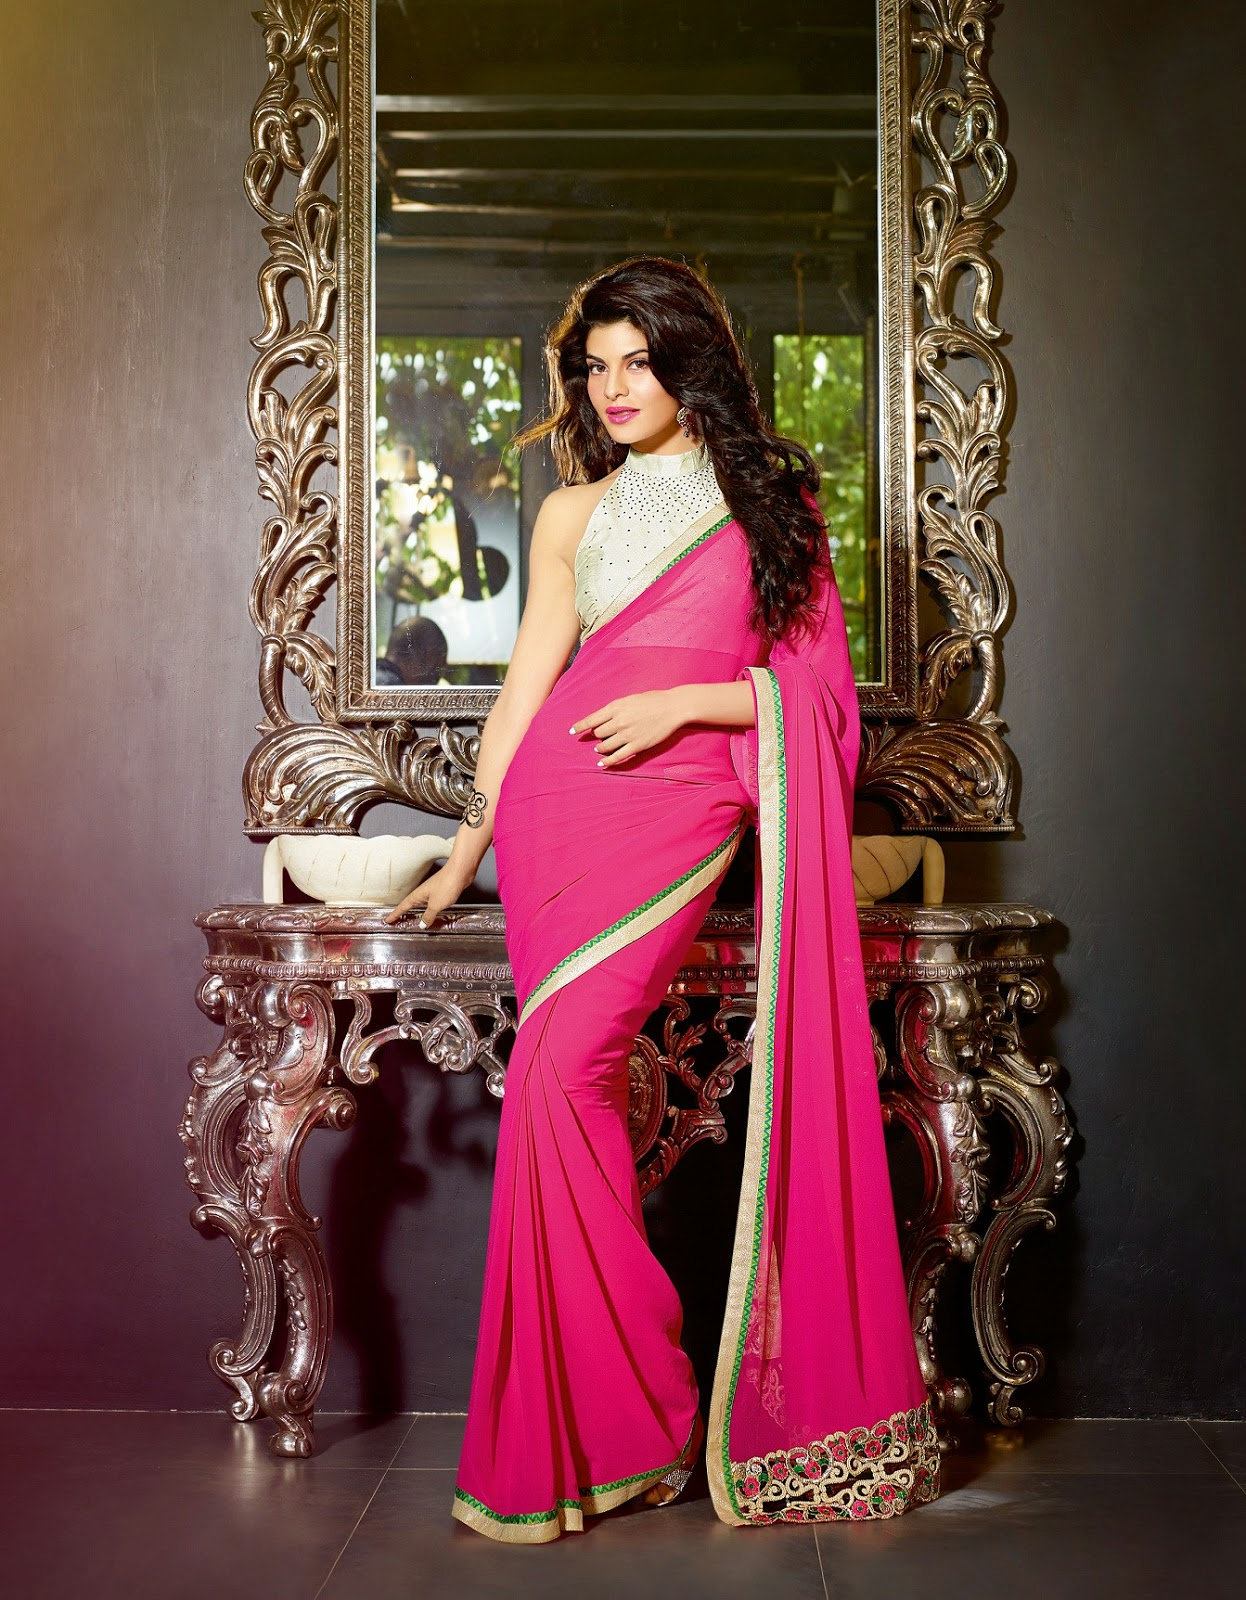 Bollywood replica sarees in bangalore dating 6